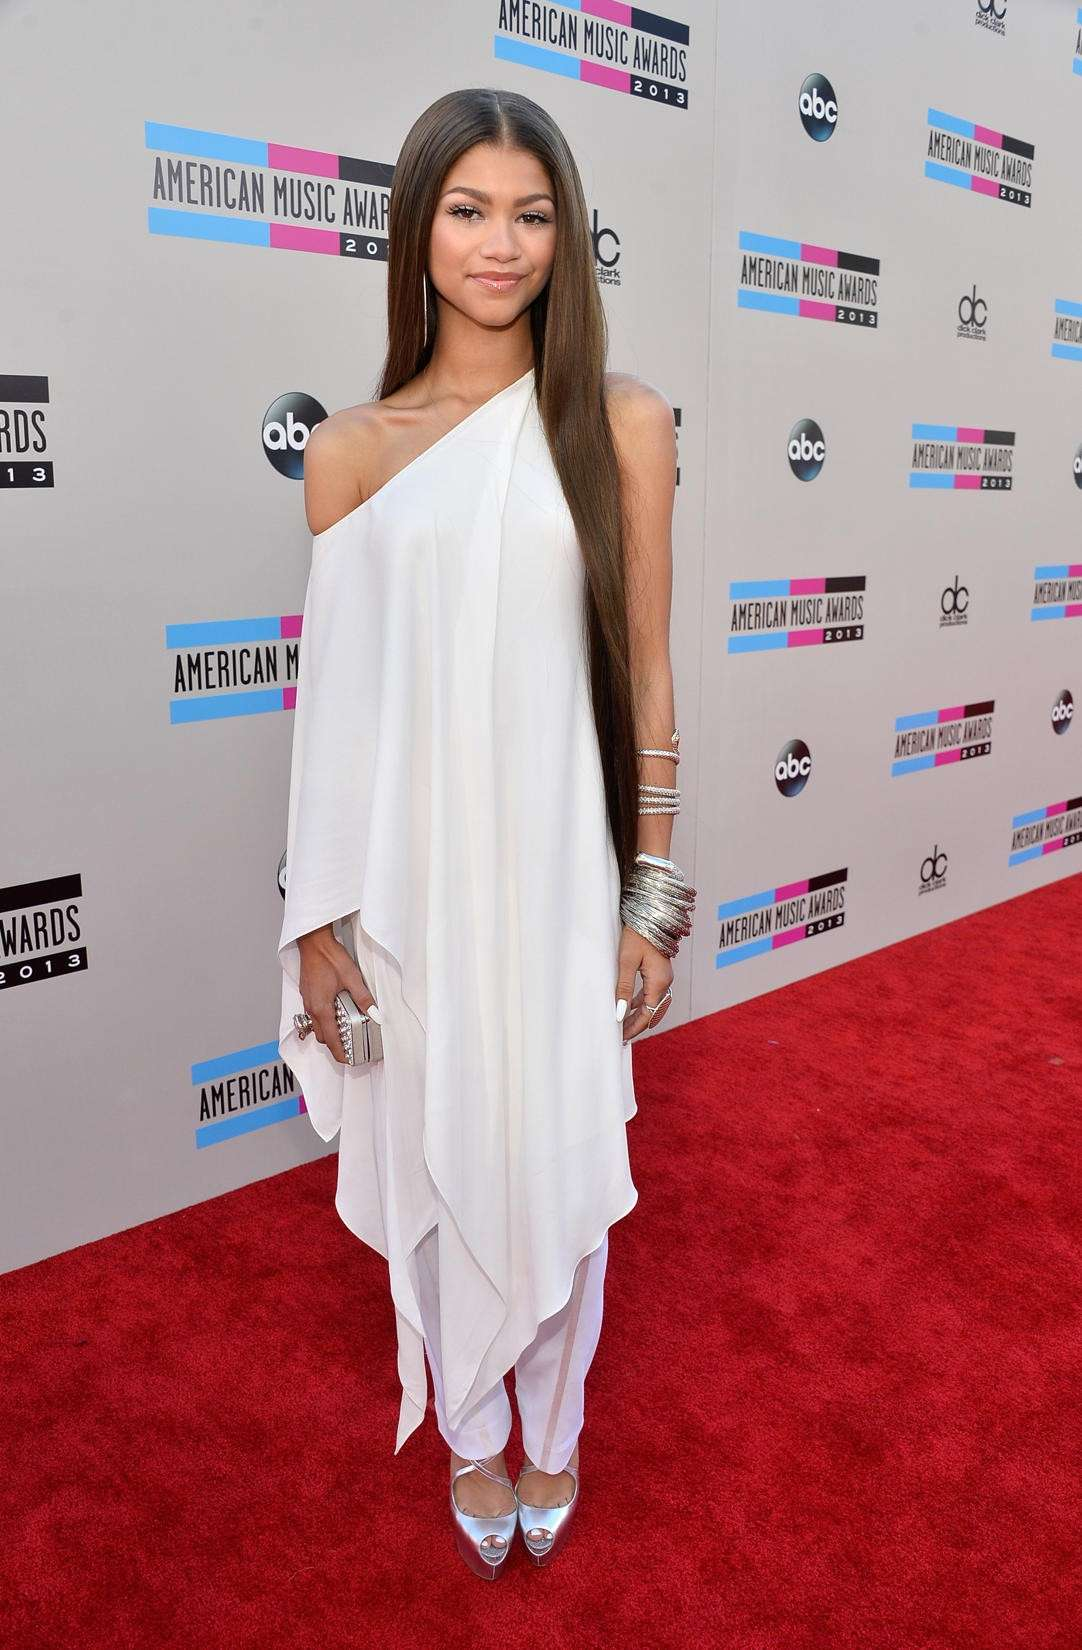 Zendaya in total white